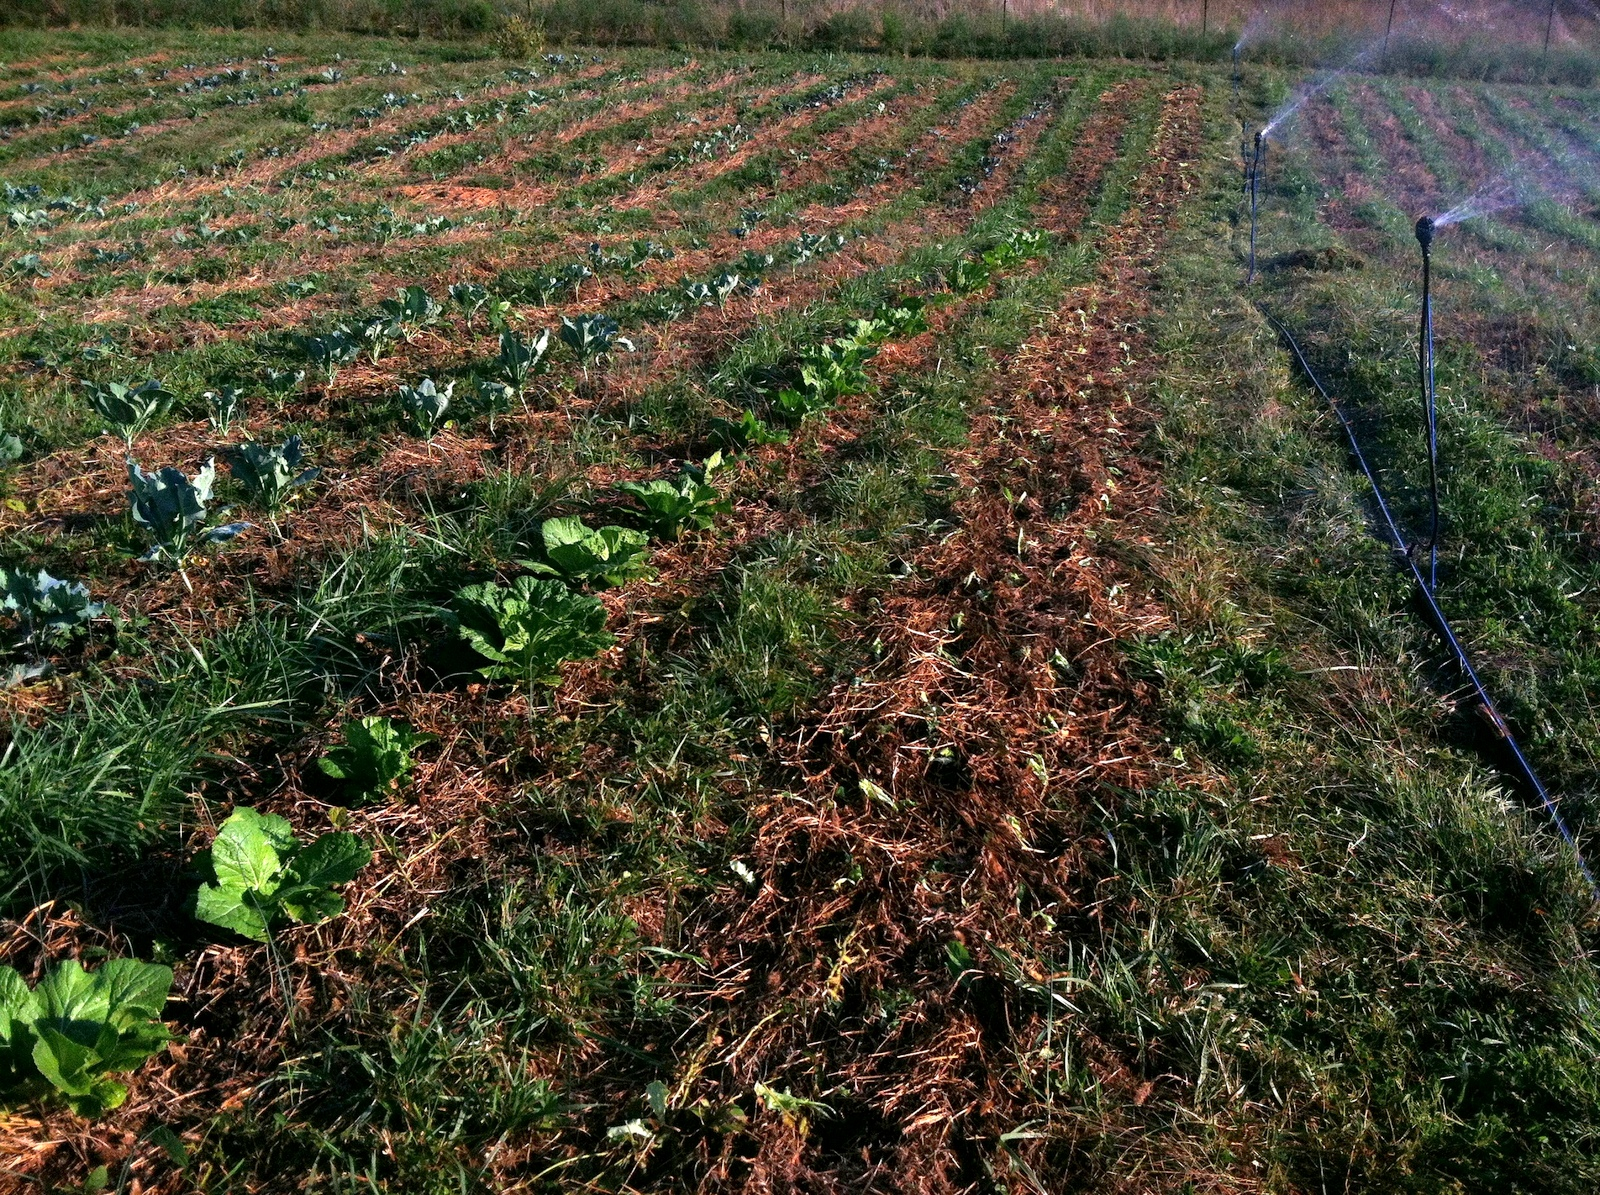 A not-so-great photo of Rotation E's Soybean & Millet roll-killed in-situ mulch, 6 weeks later. That's some wee 'North Pole' lettuce just transplanted in the right-most bed. It's working way better than I thought, so 'Yay!'